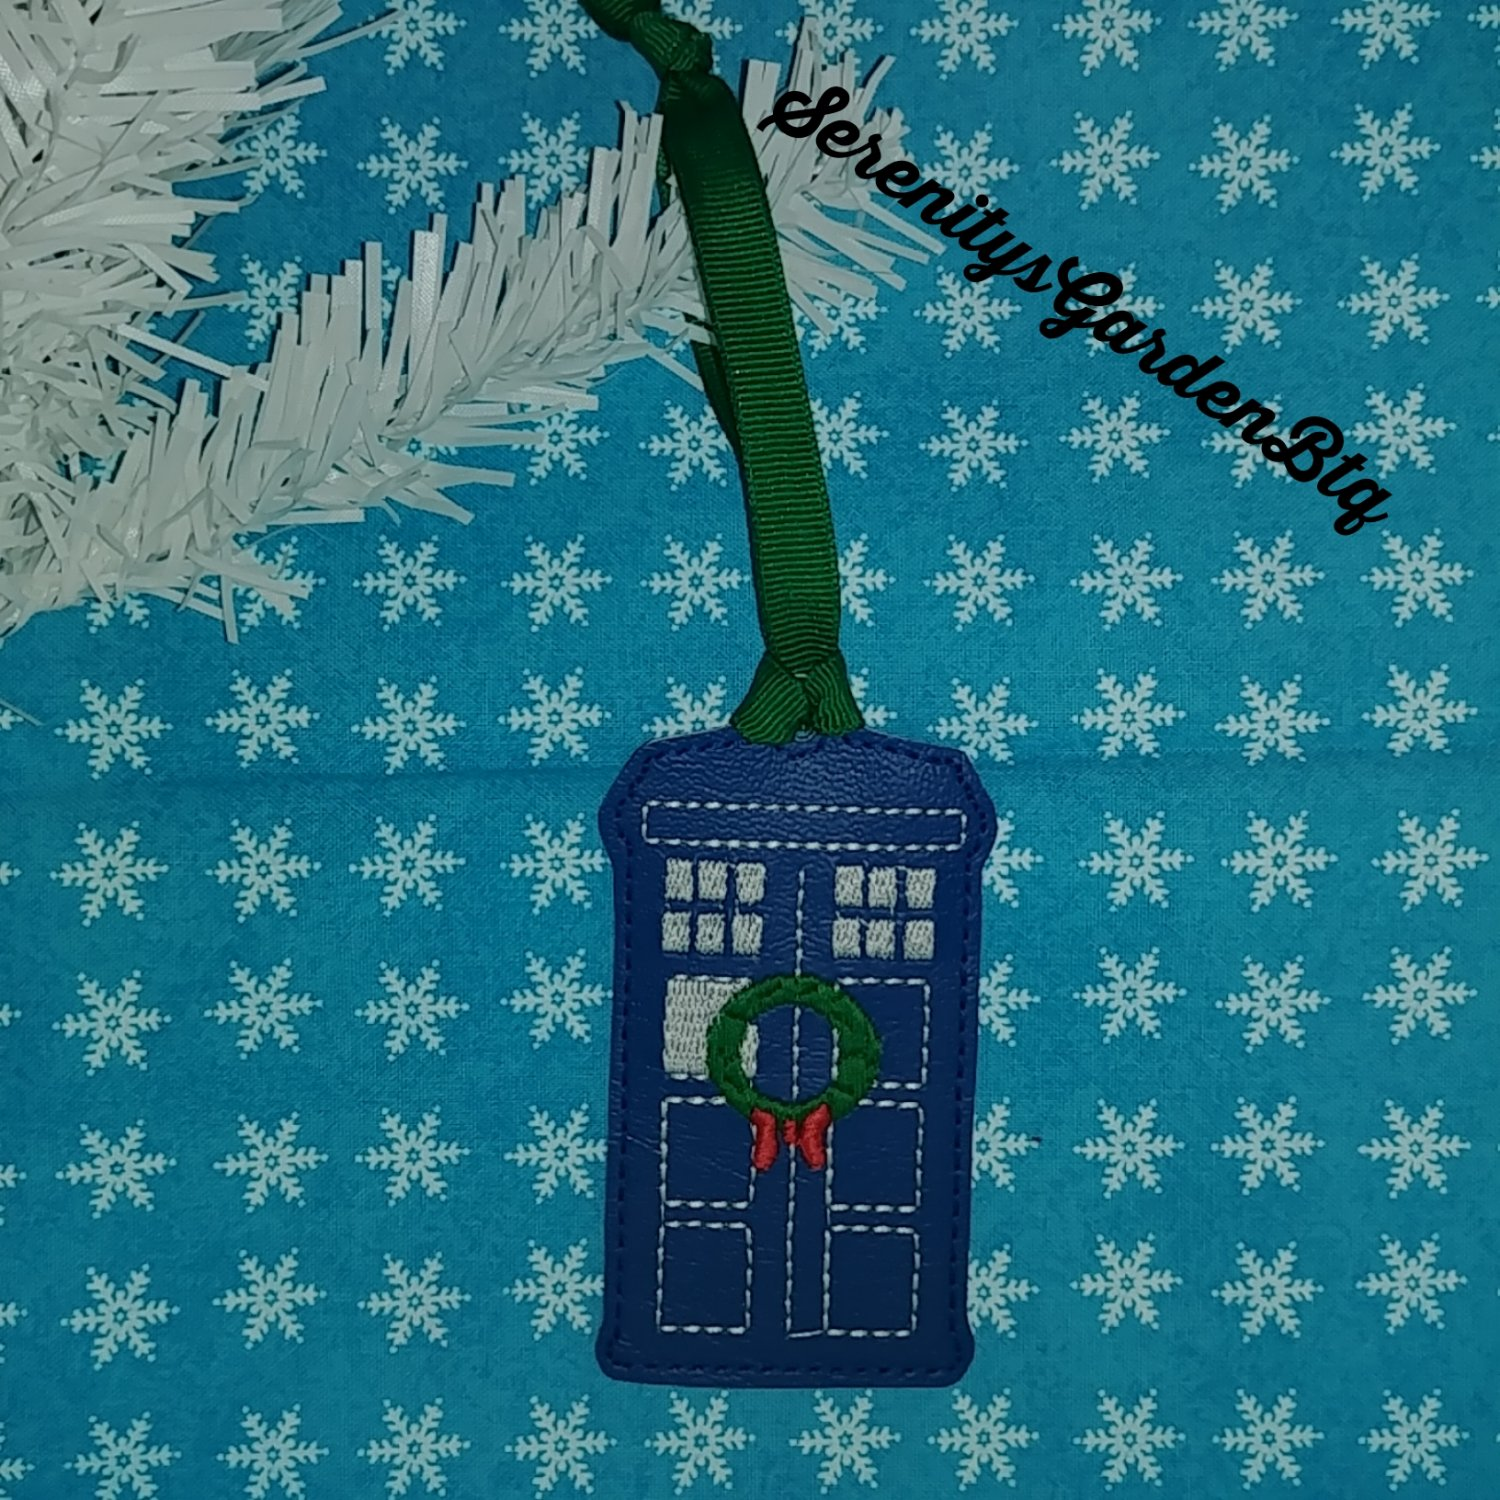 Dr who inspired police box Christmas ornament